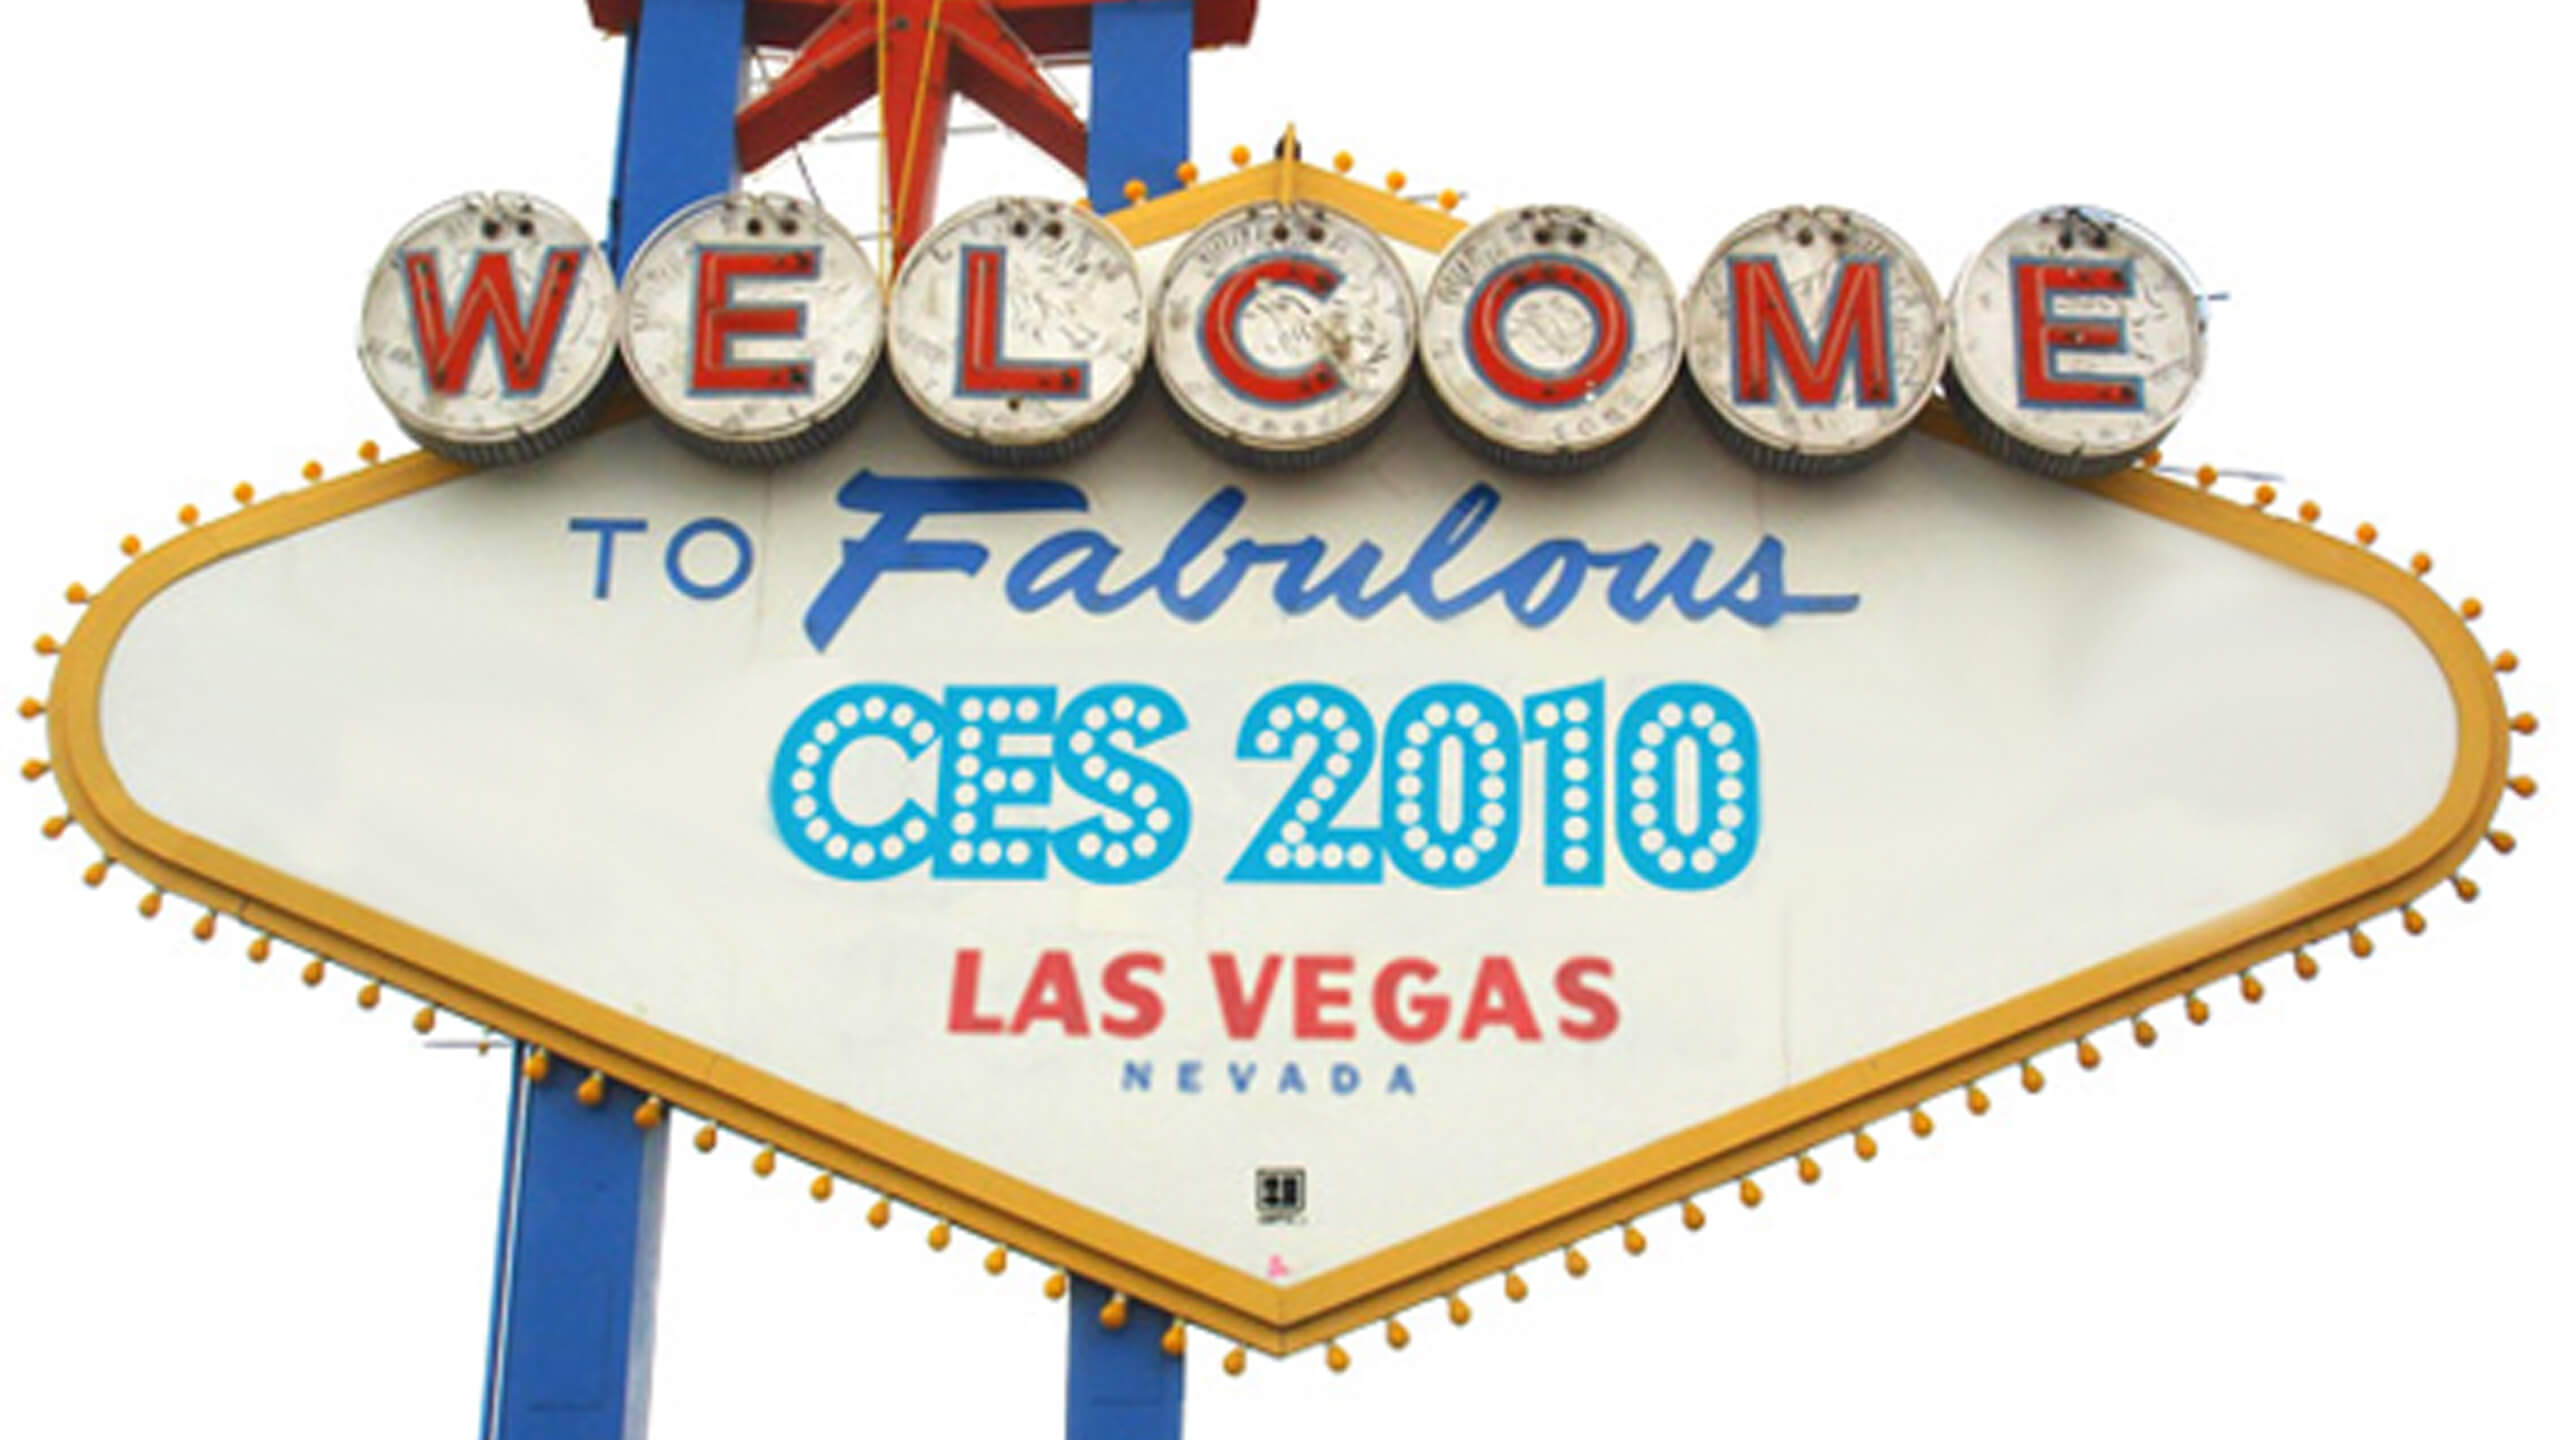 CES 2010 STARTS TOMORROW